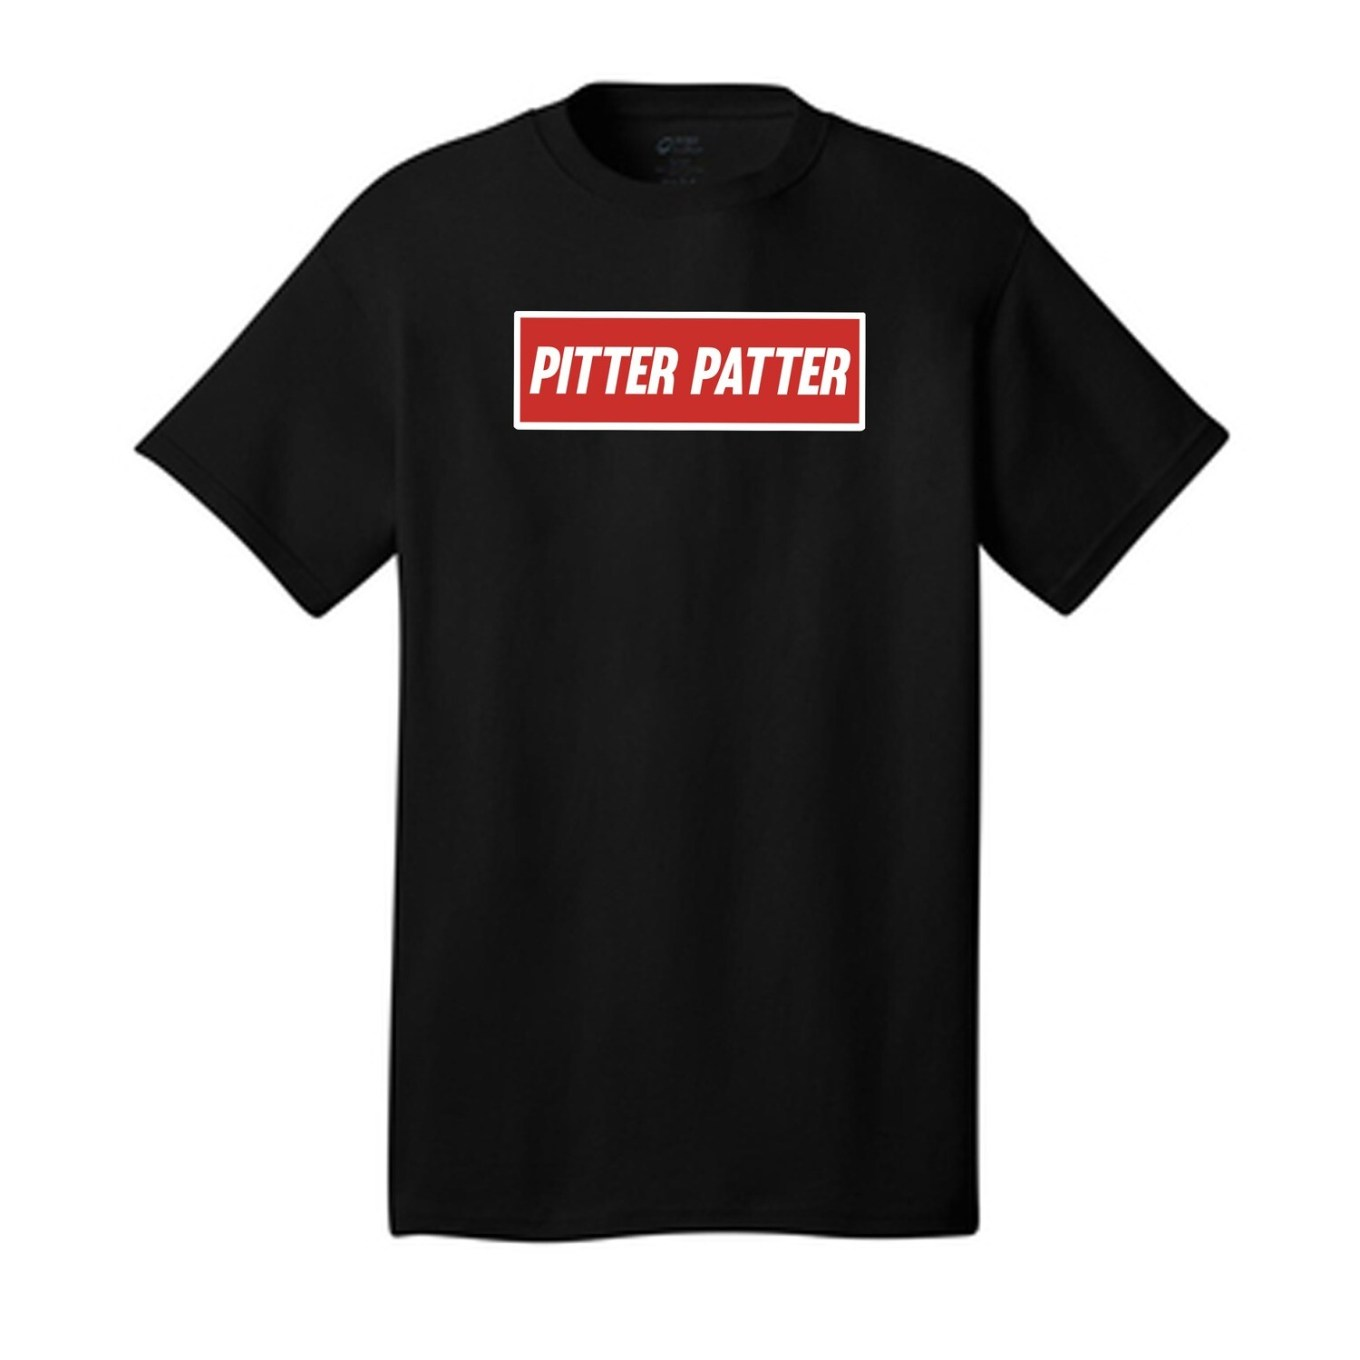 Pitter Patter (T-Shirt)